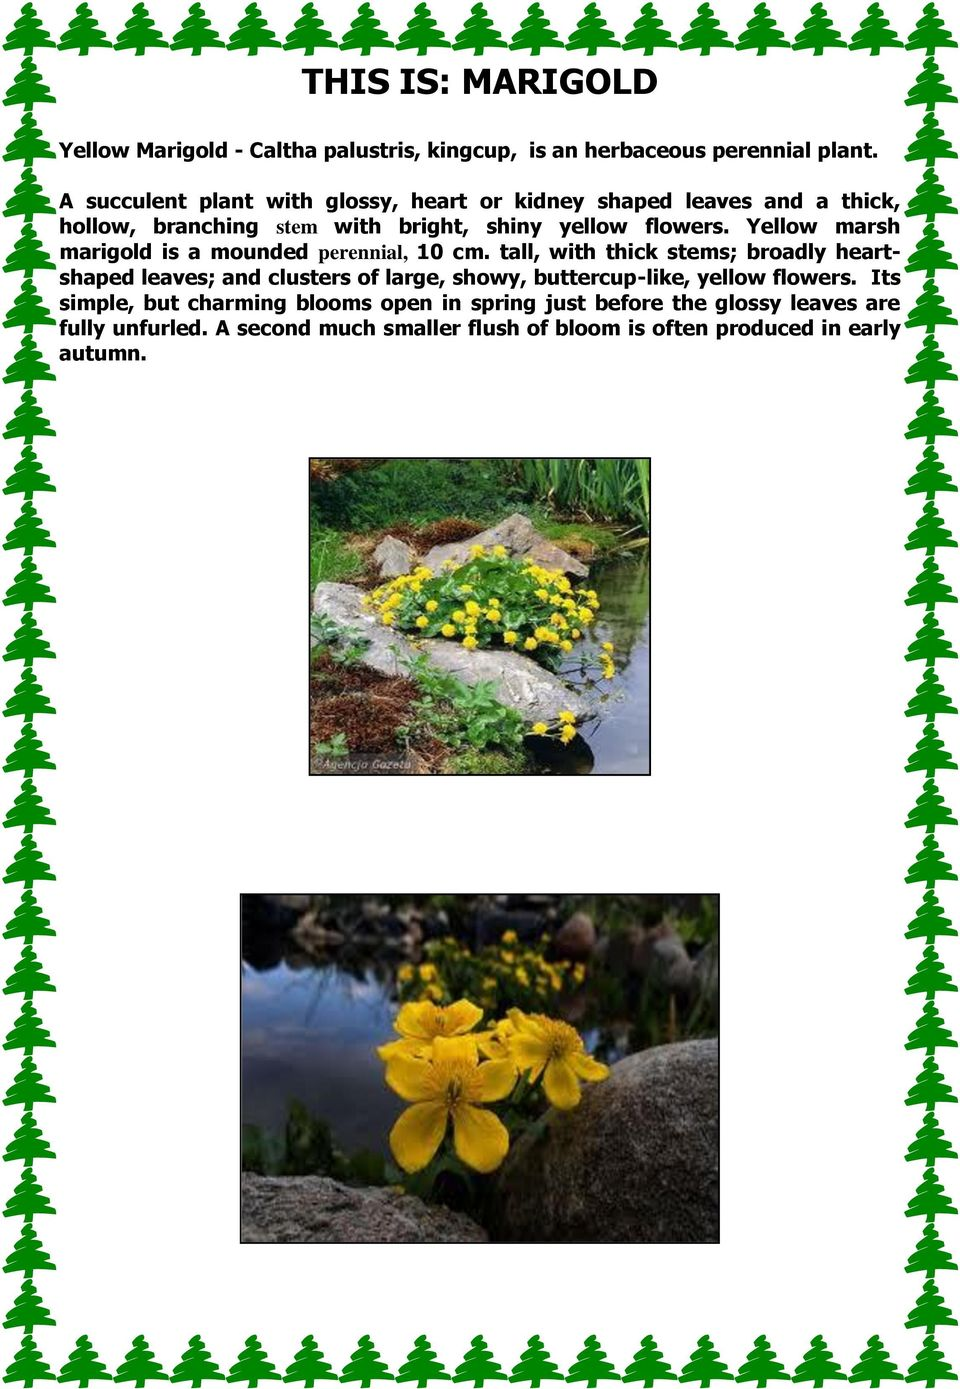 Yellow marsh marigold is a mounded perennial, 10 cm.